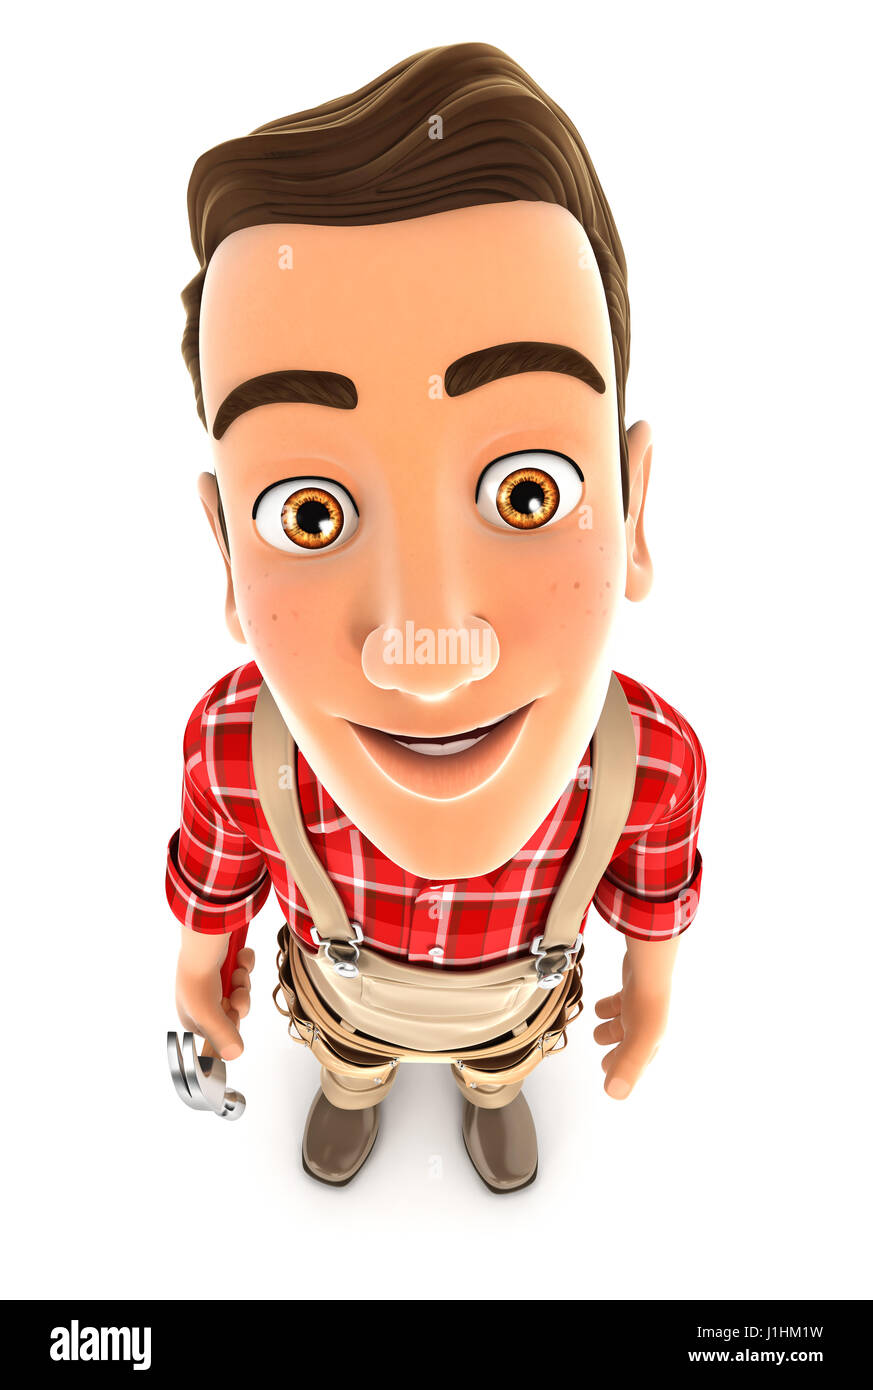 3d handyman standing and looking up at camera, illustration with isolated white background Stock Photo